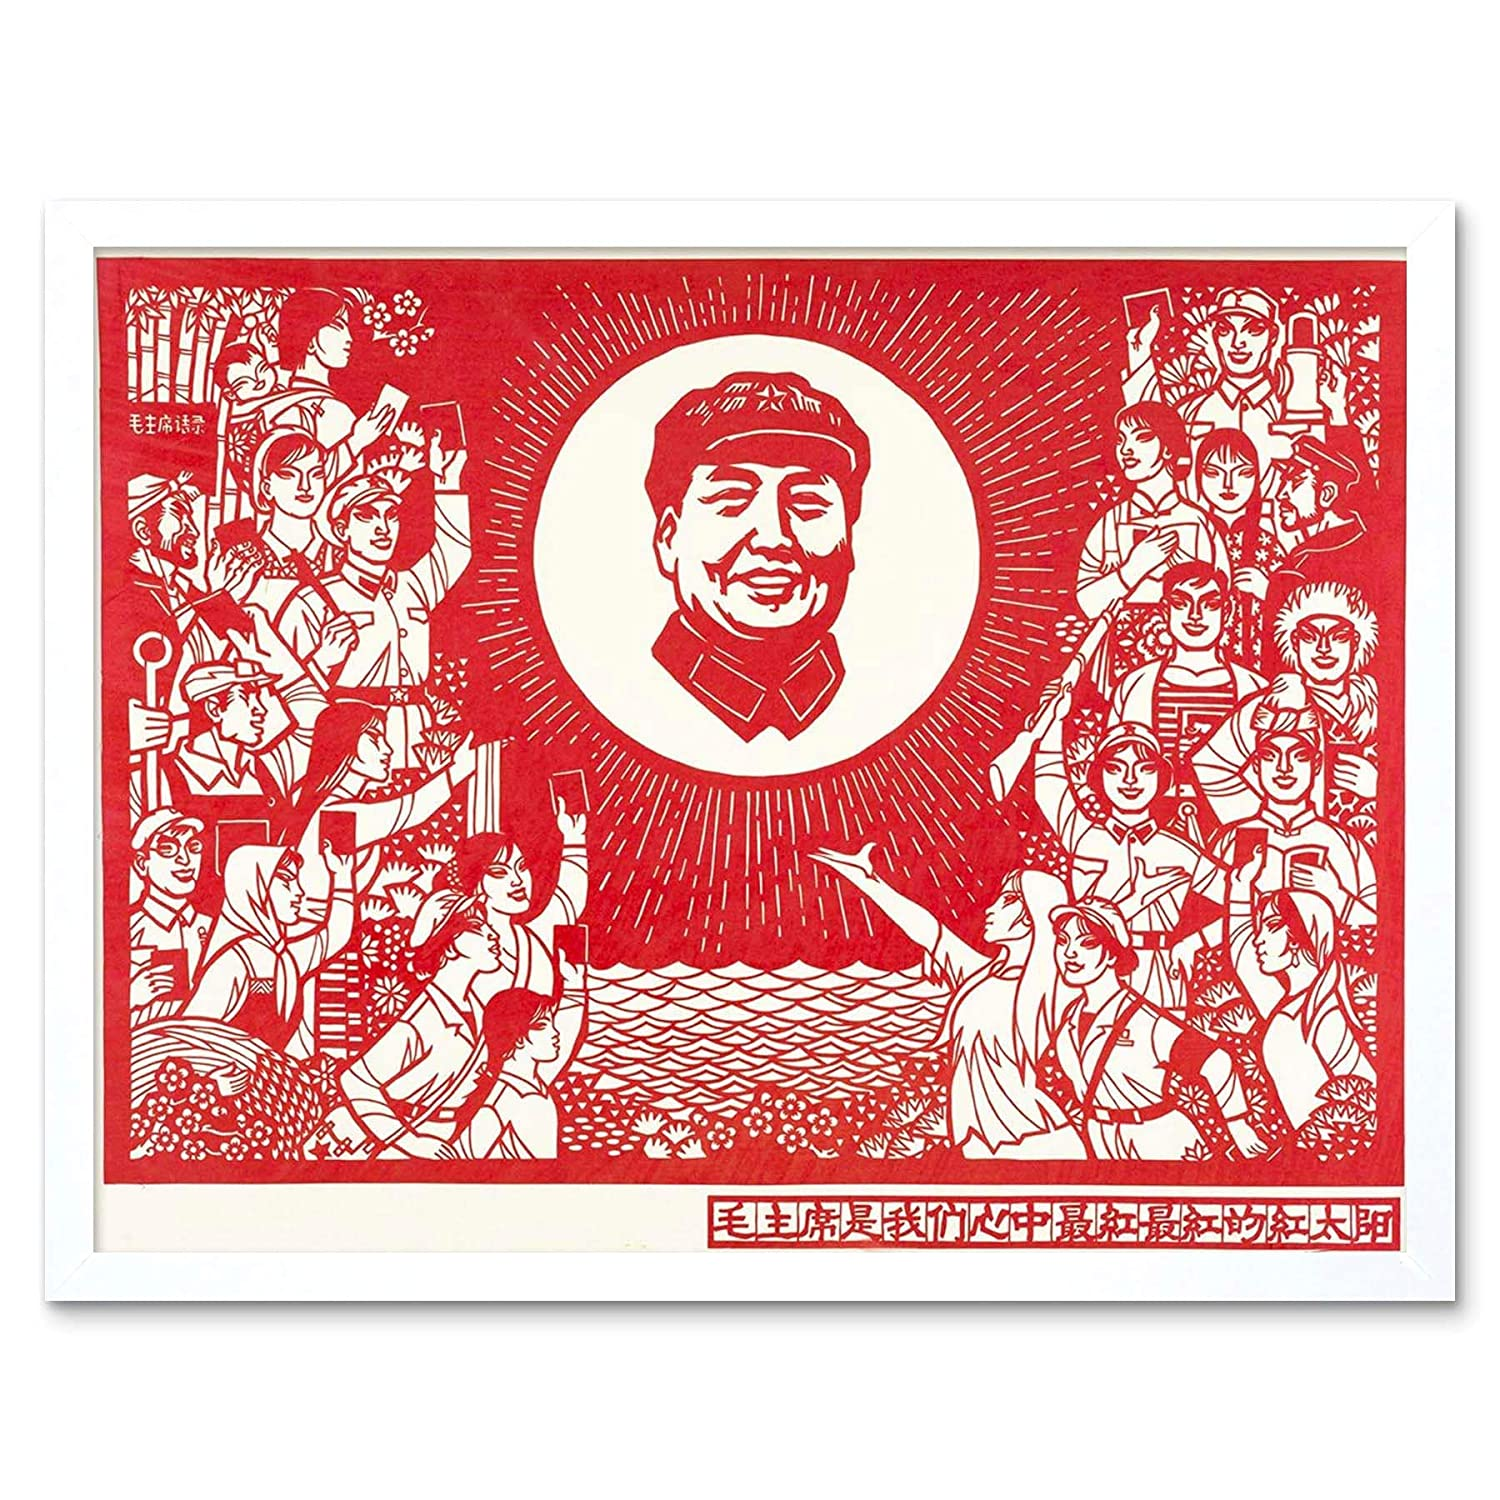 Wee Blue Coo Propaganda Political Communist China Chairman Mao Red Sun Book Unframed Wall Art Print Poster Home Decor Premium